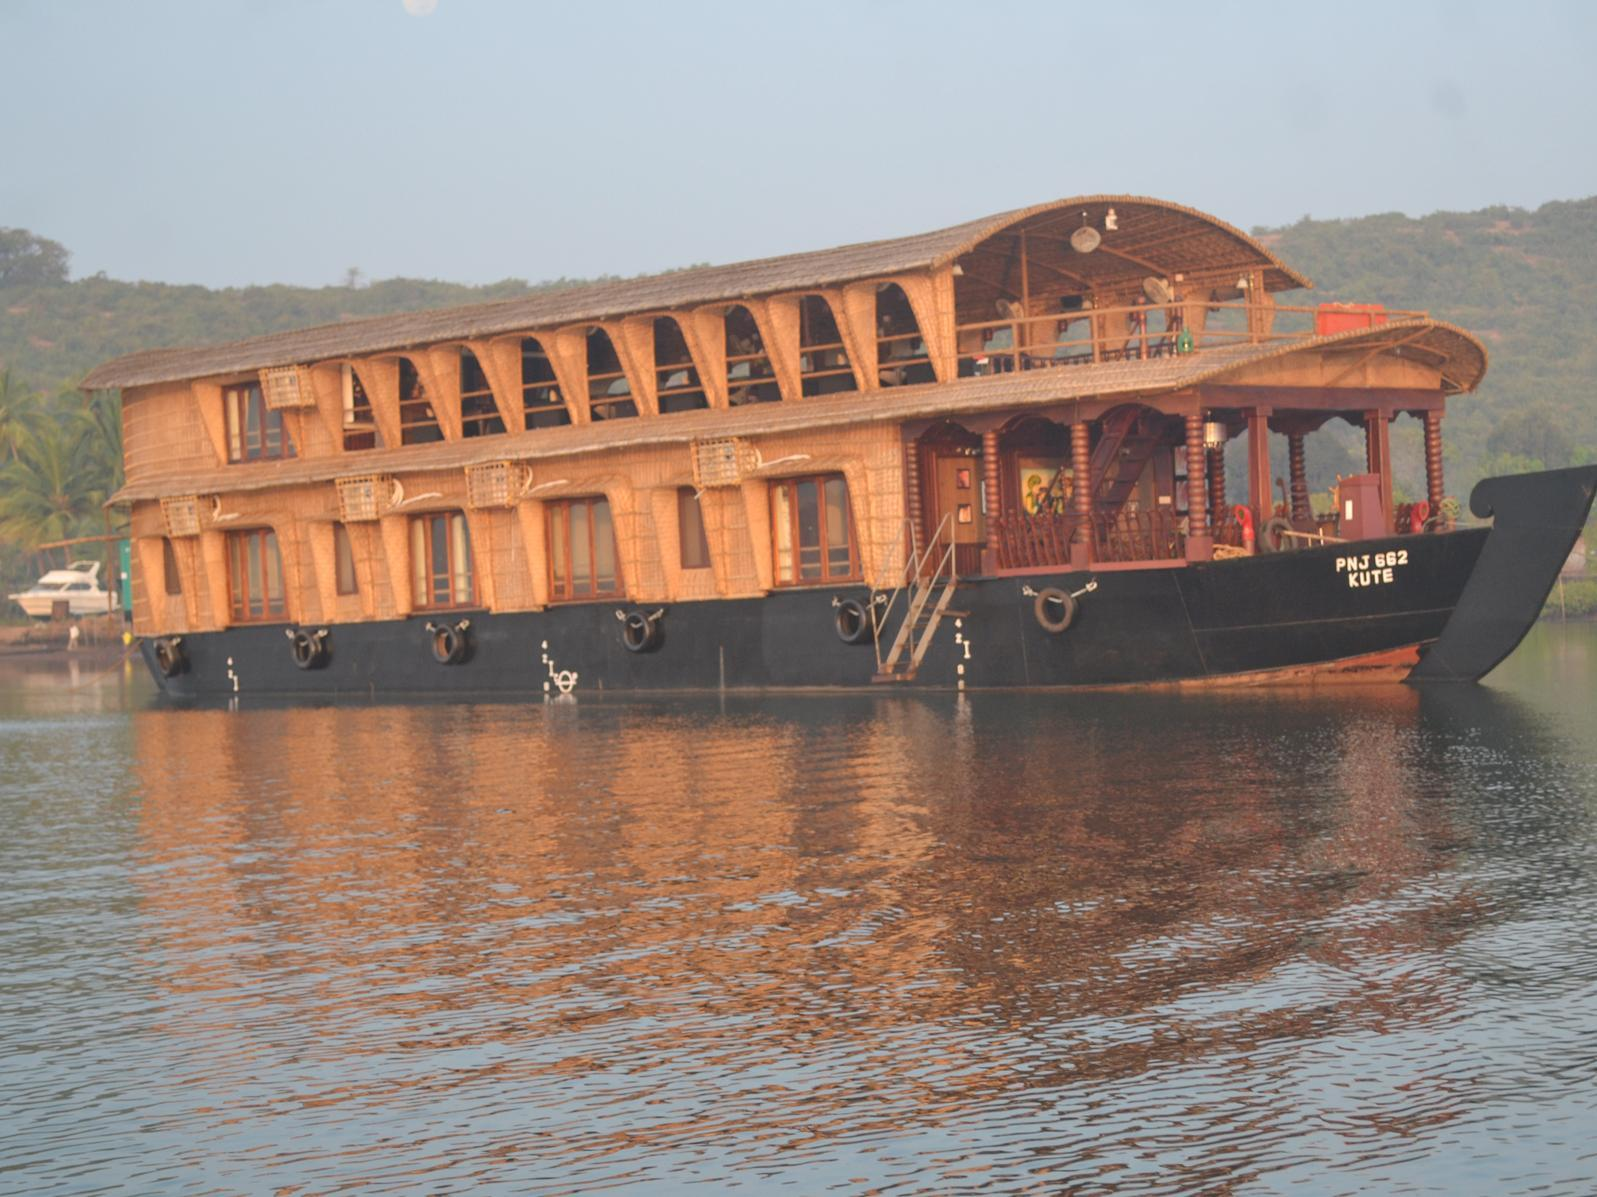 Shri Kute A Luxury Cruise - North Goa